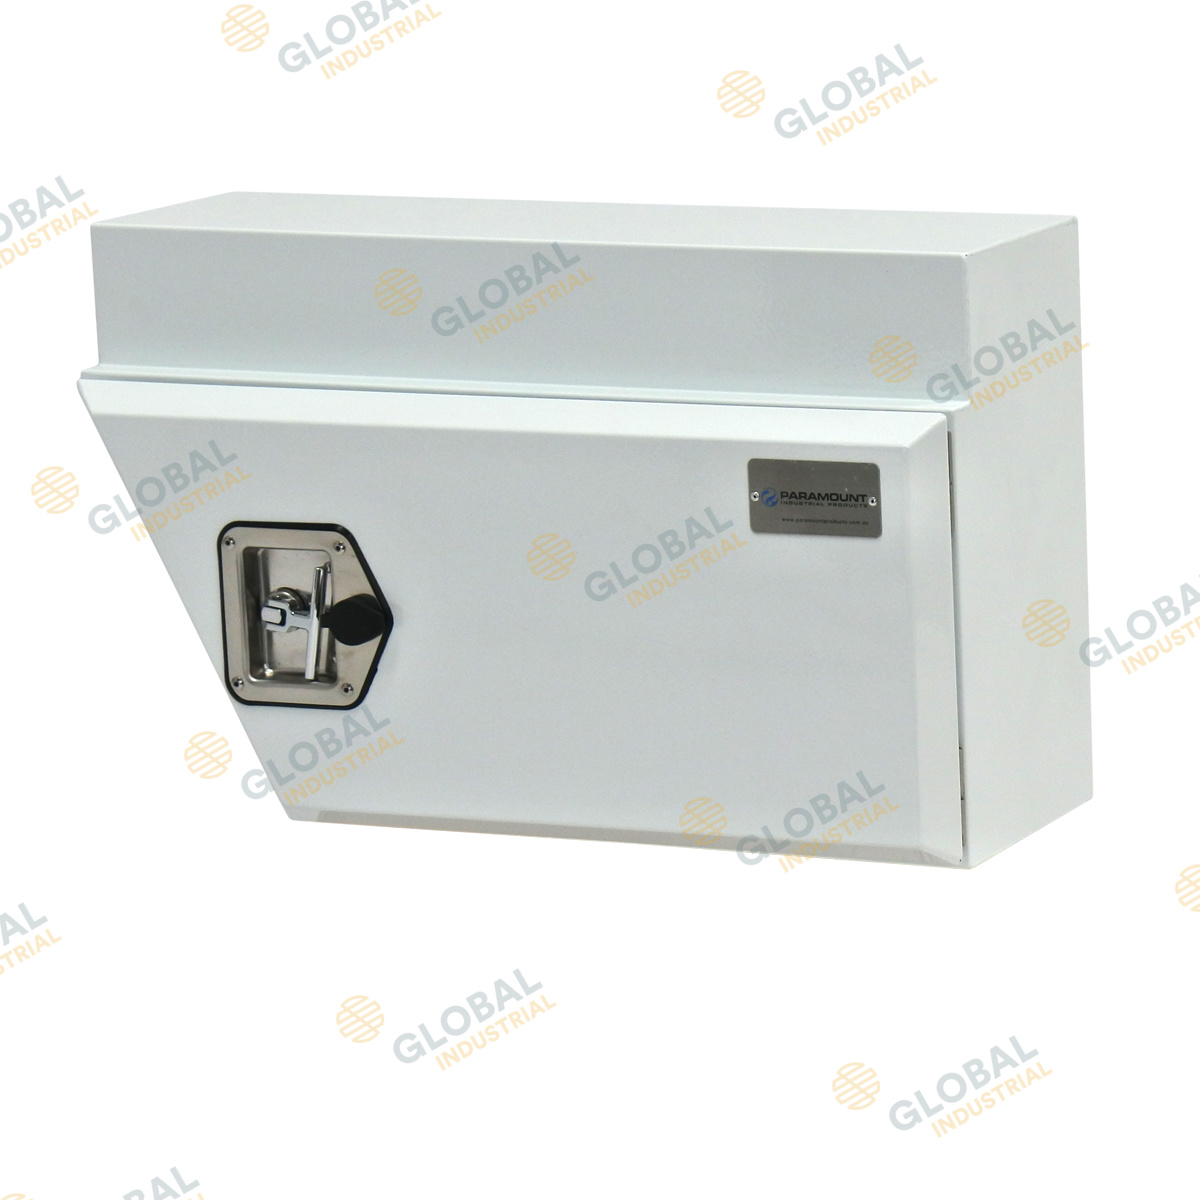 Right white unerbody toolbox